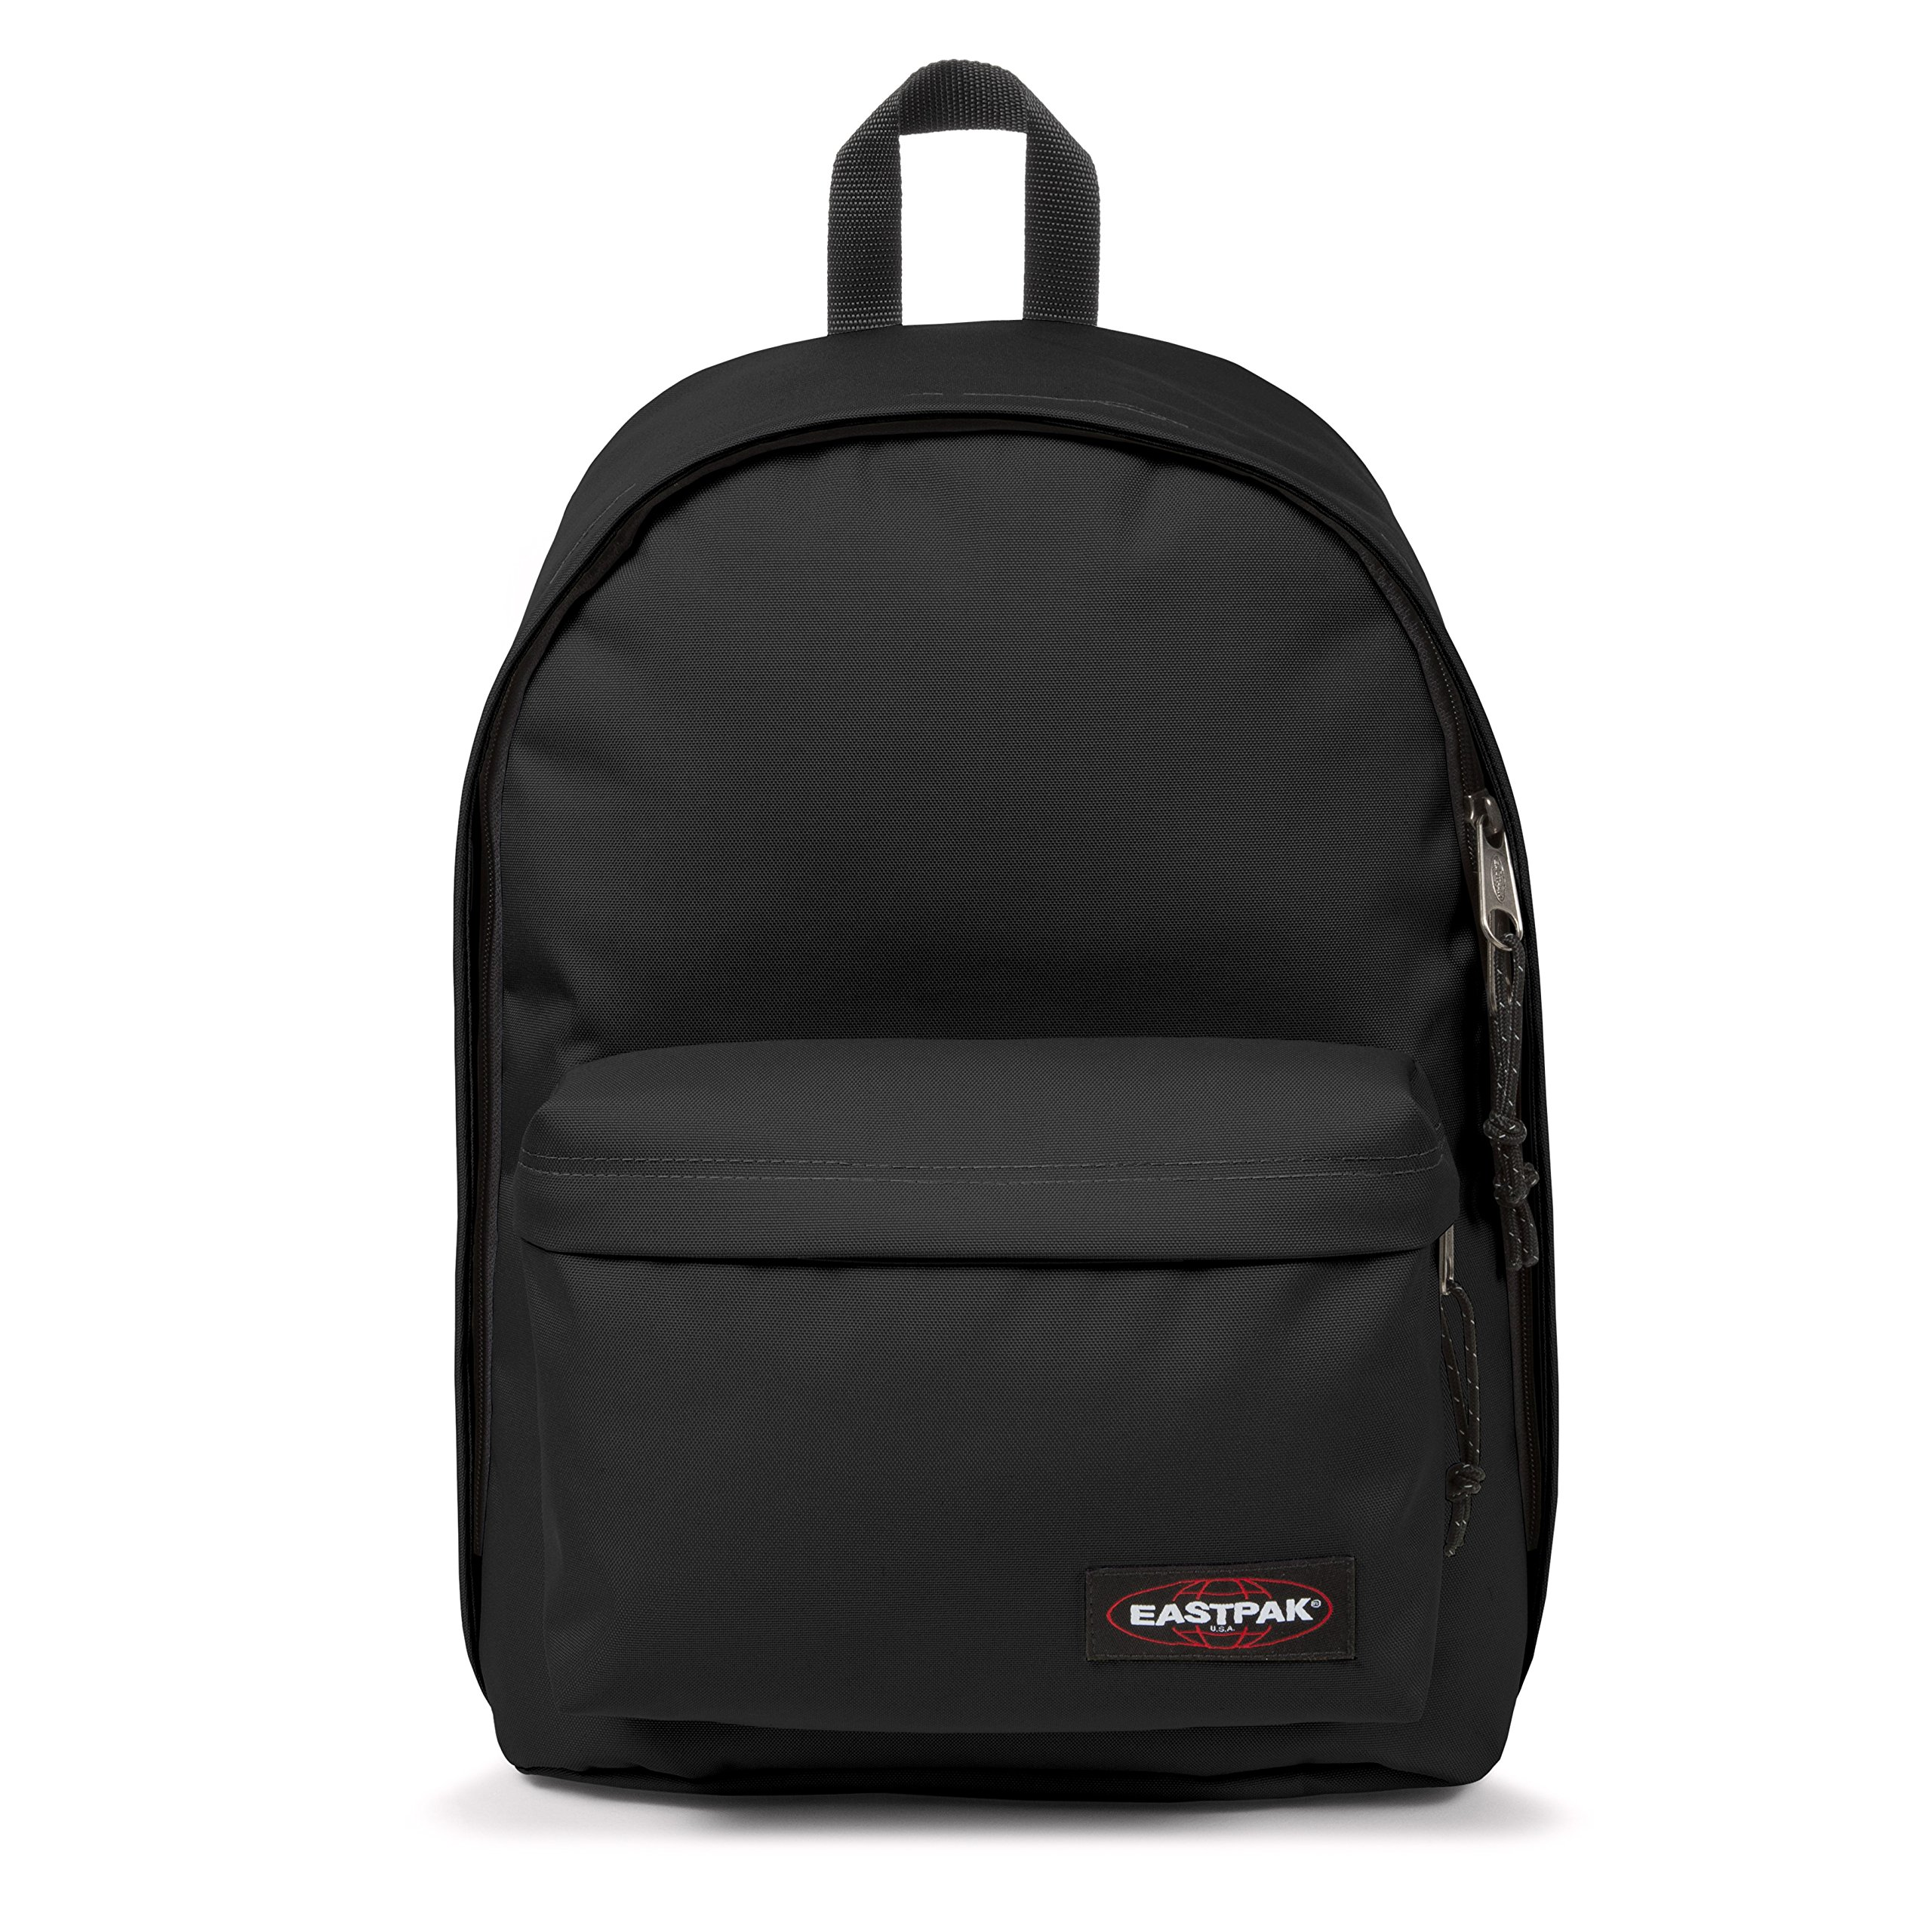 Eastpak Out Of Office Sac à épaule, 44 cm, 27 L, Noir product image